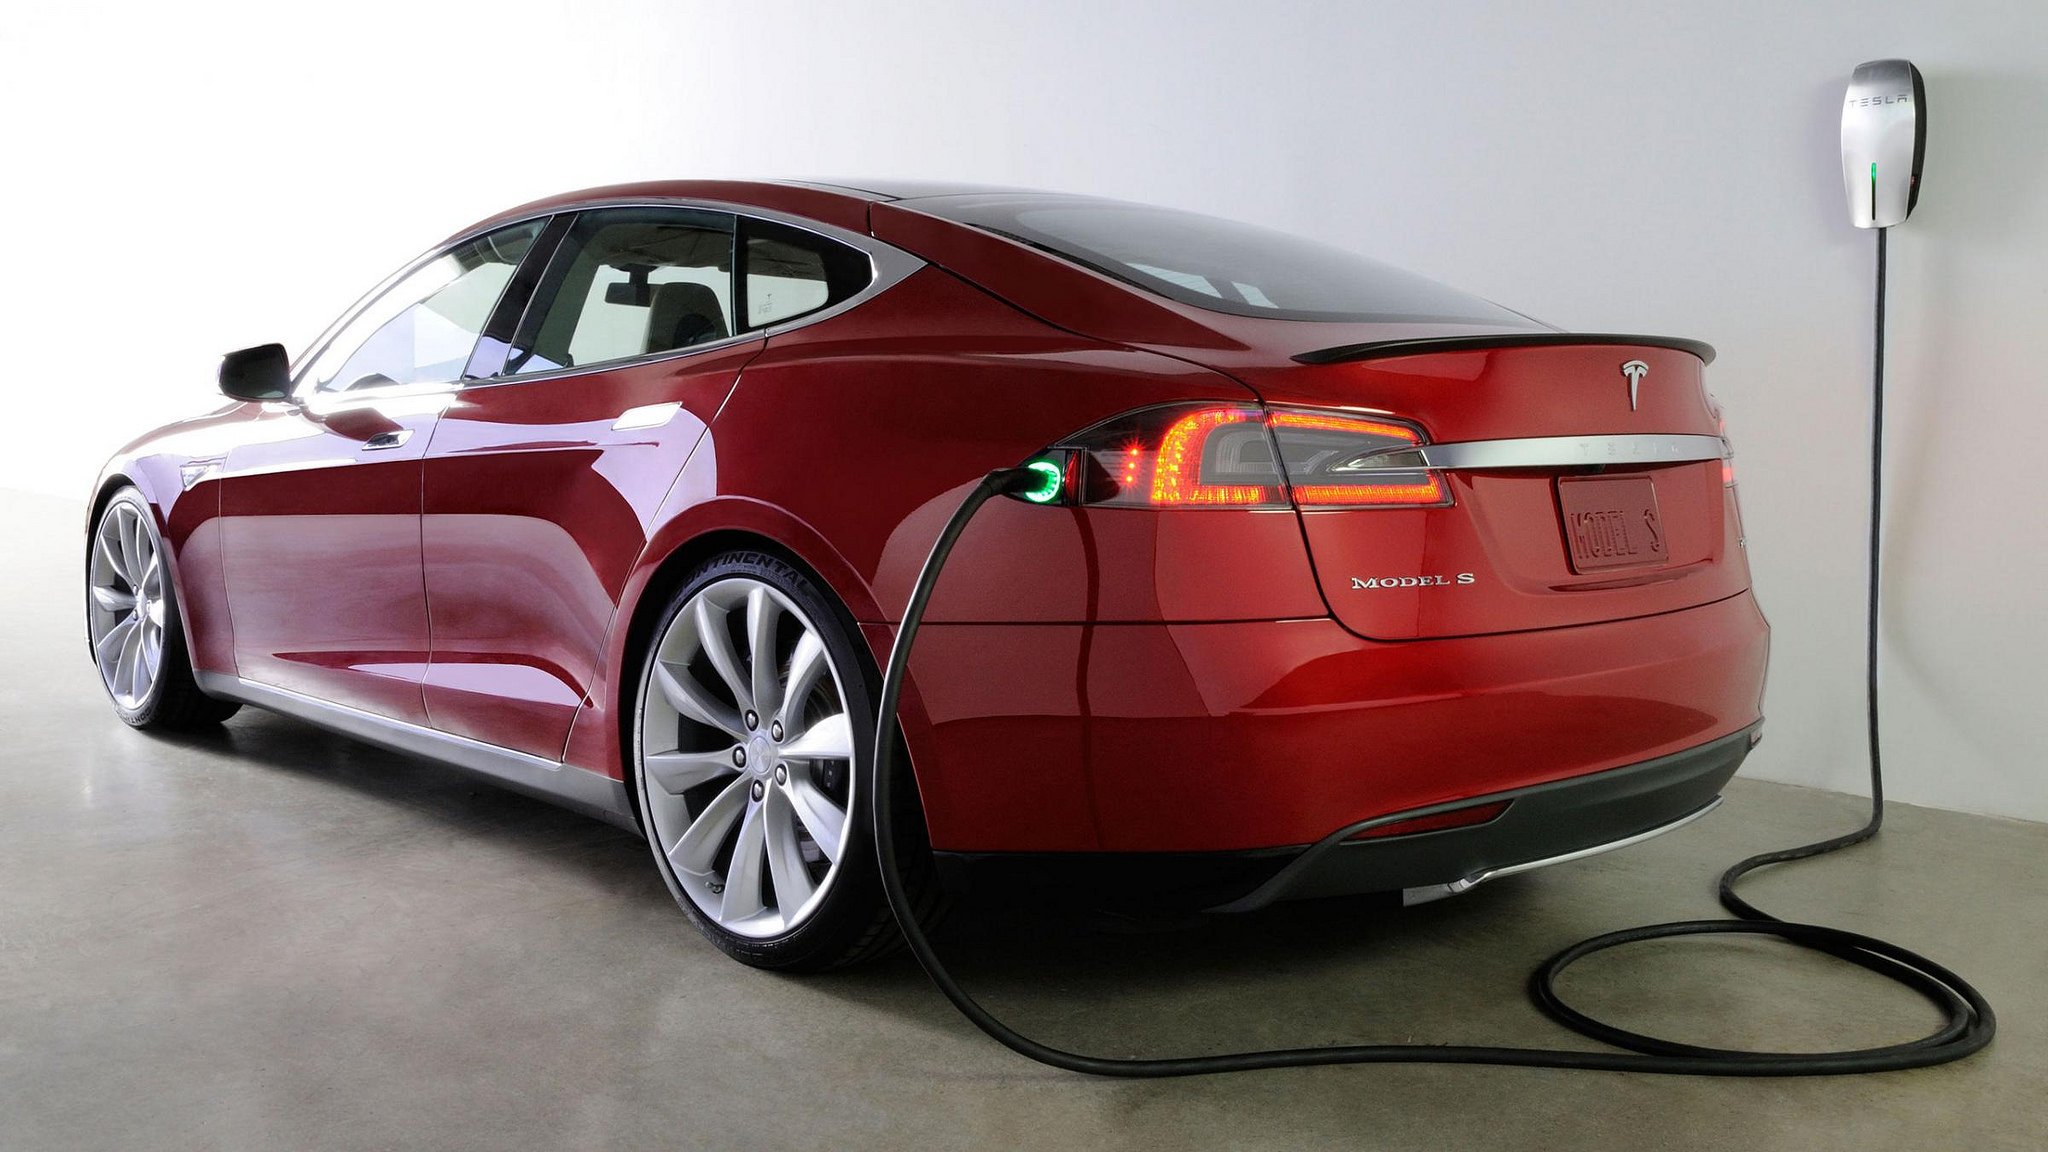 Elon Musk says Tesla will unveil a new kind of battery to power your home